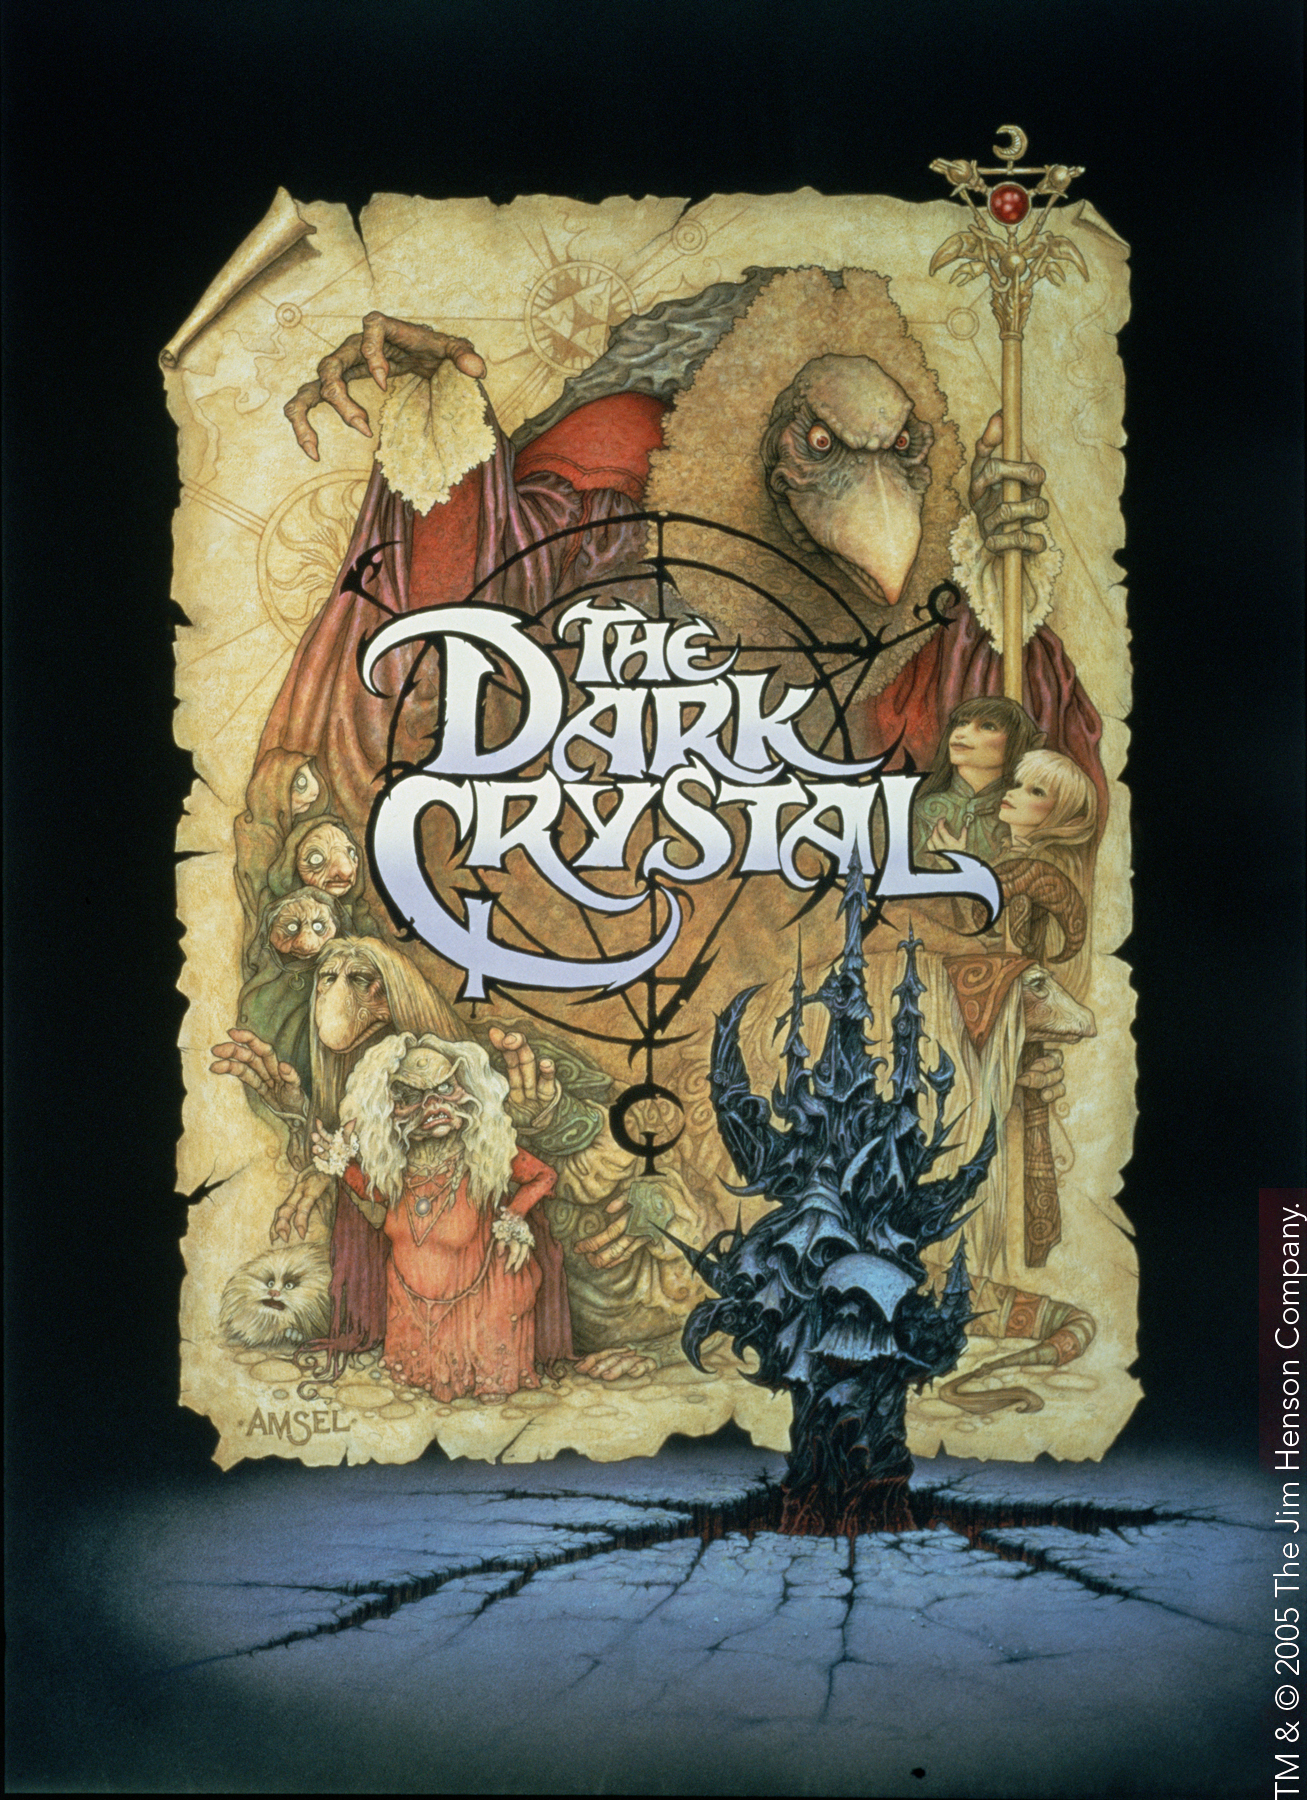 The Dark Crystal - Original Poster